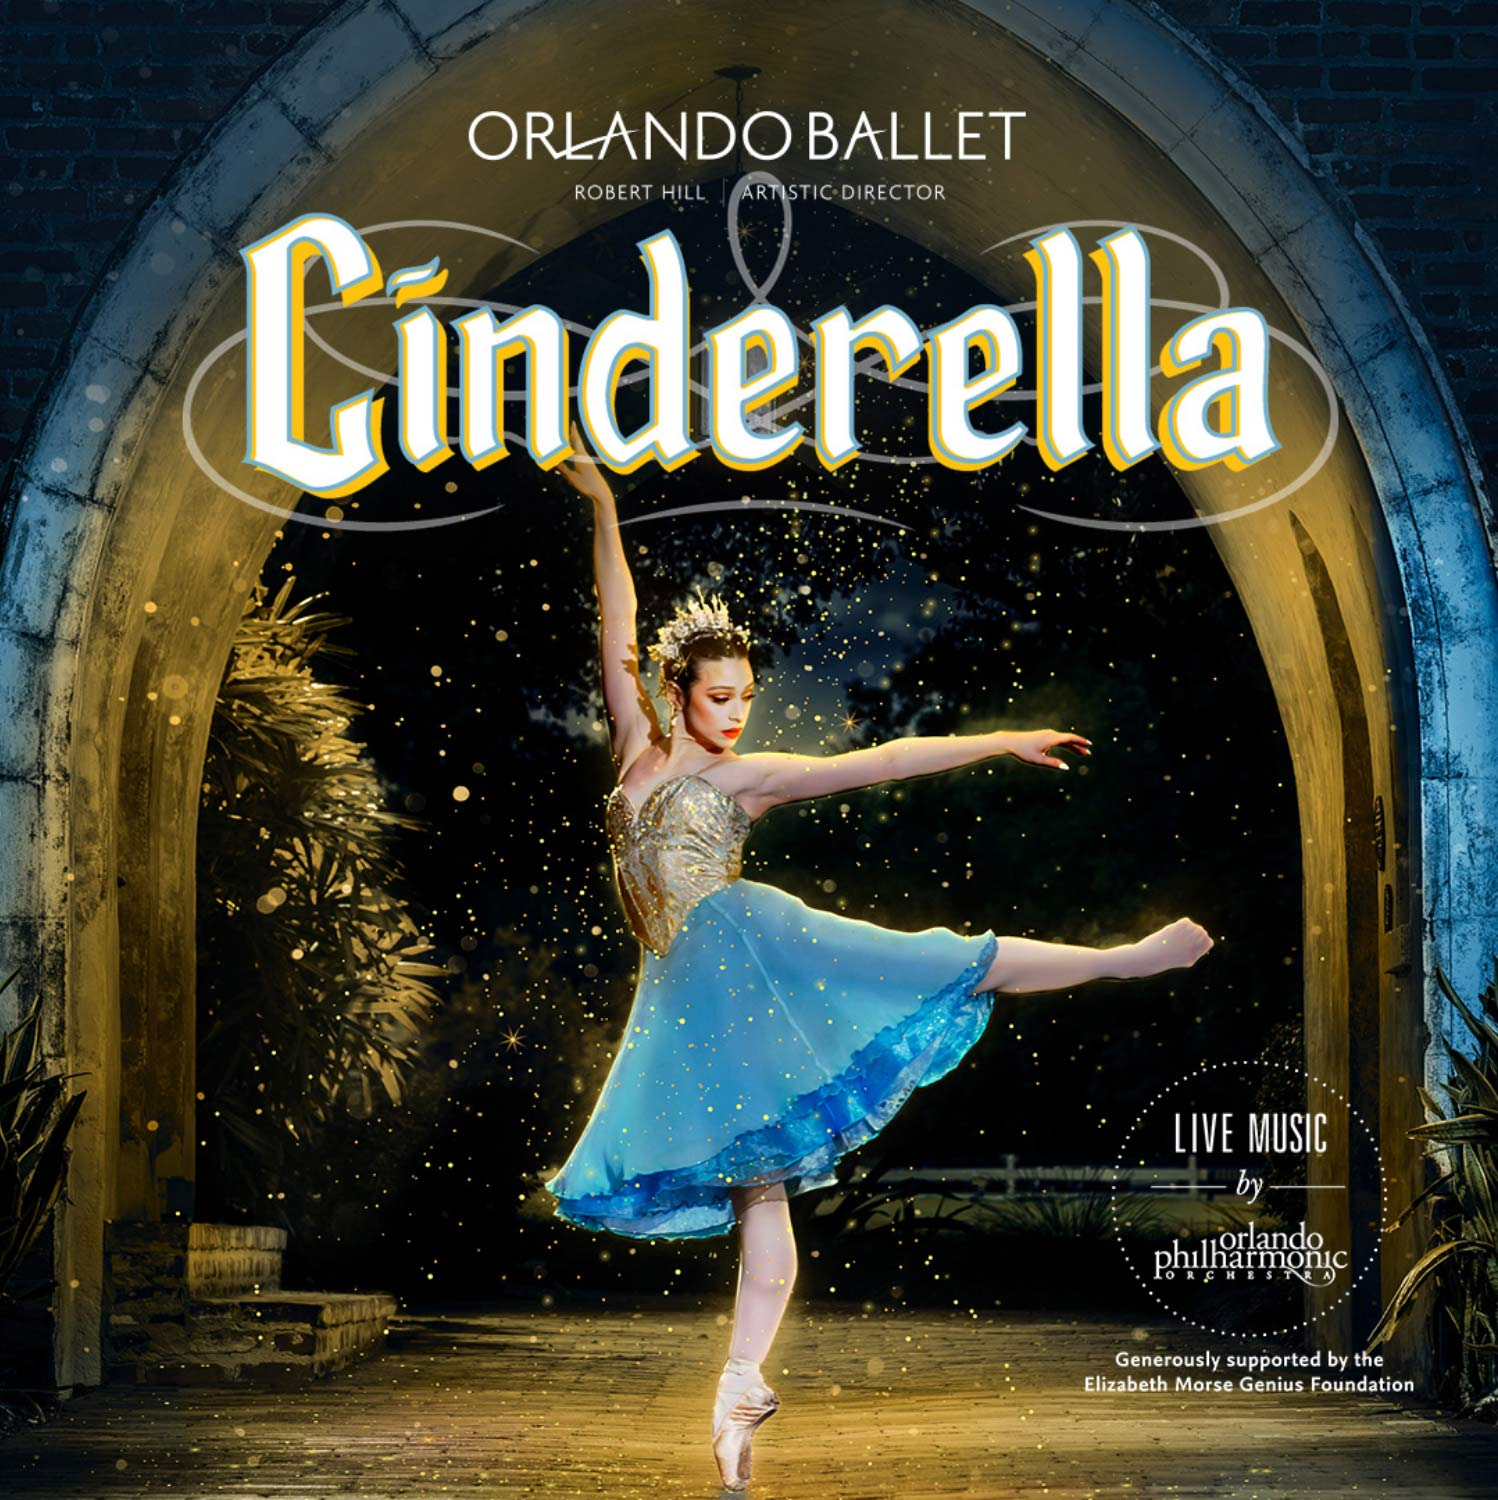 "Promotional image of Orlando Ballet's ""Cinderella"" performance with female ballet dancer wearing gold and blue Cinderella dress posing for the photo."